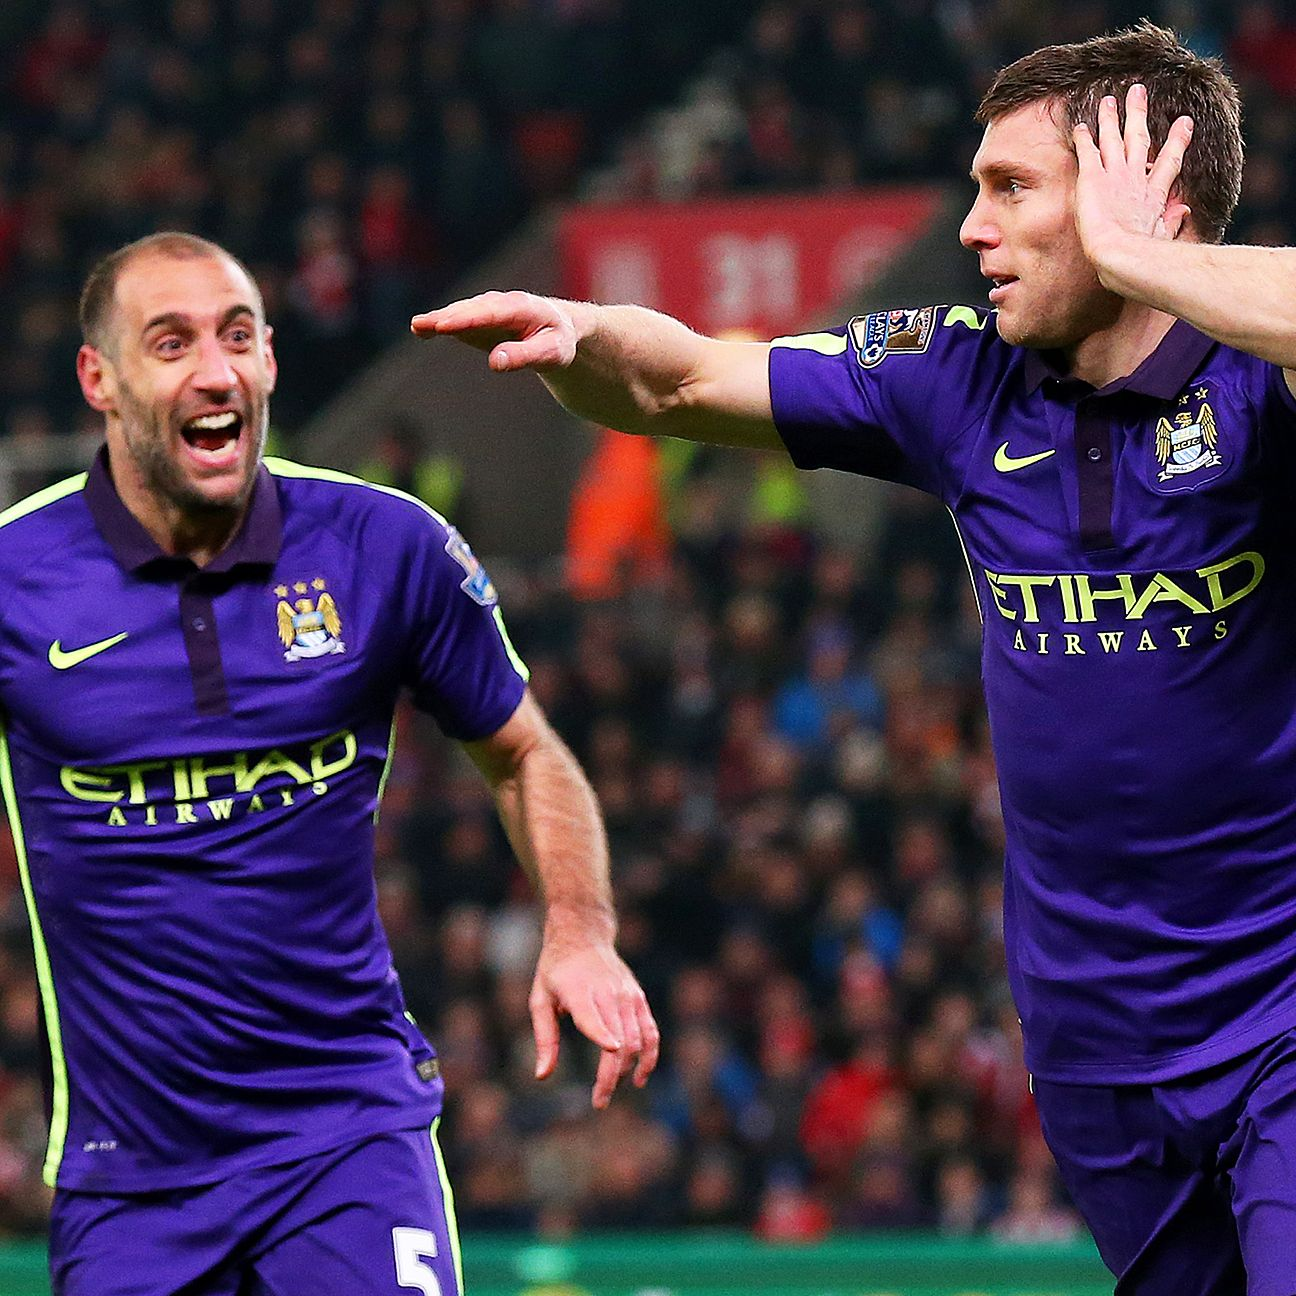 James Milner's second half goal broke a 1-1 deadlock and put City on their way to a 4-1 win.